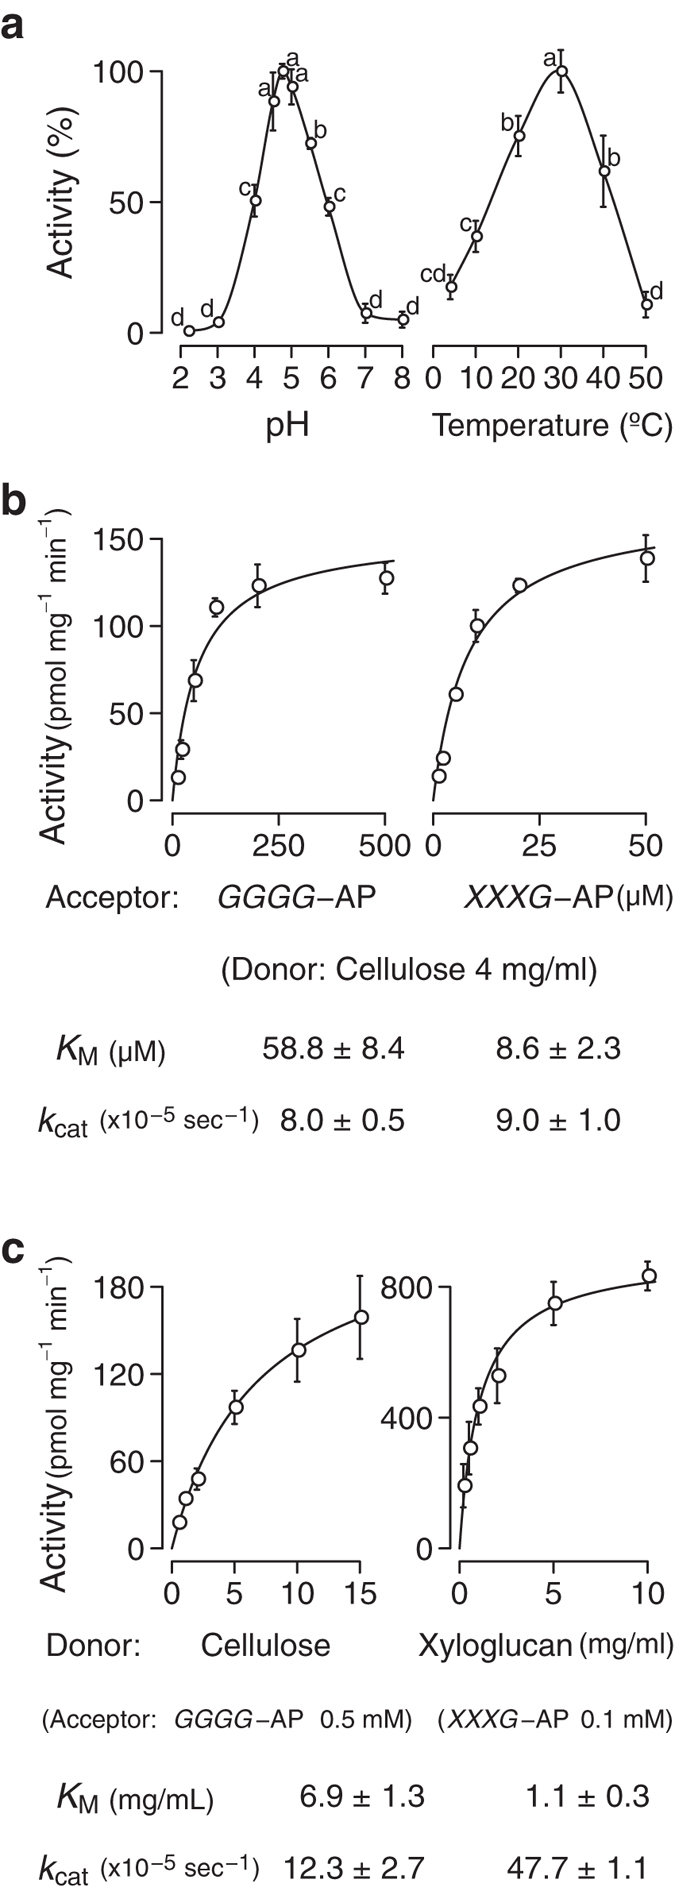 pH and temperature dependence and kinetic parameters of AtXTH3-mediated transglycosylation reaction. ( a ) pH (left) and temperature (right) dependence of AtXTH3-mediated transglycosylation (donor: amorphous cellulose; acceptor: aminopyridyl cellotetraose, GGGG -AP). ( b ) Michaelis constant ( K M ) and turnover number ( k cat ) for acceptor oligosaccharides (left: GGGG -AP; right: XXXG -AP) with amorphous cellulose as the donor substrate. ( c ) Michaelis constant and turnover number for donor substrates (left: cellulose donor and GGGG -AP acceptor; right: <t>xyloglucan</t> donor and XXXG -AP acceptor). The data are presented as the mean ± s.d. from three independent experiments. Different letters in ( a ) denote significant differences as determined by Tukey's test ( p